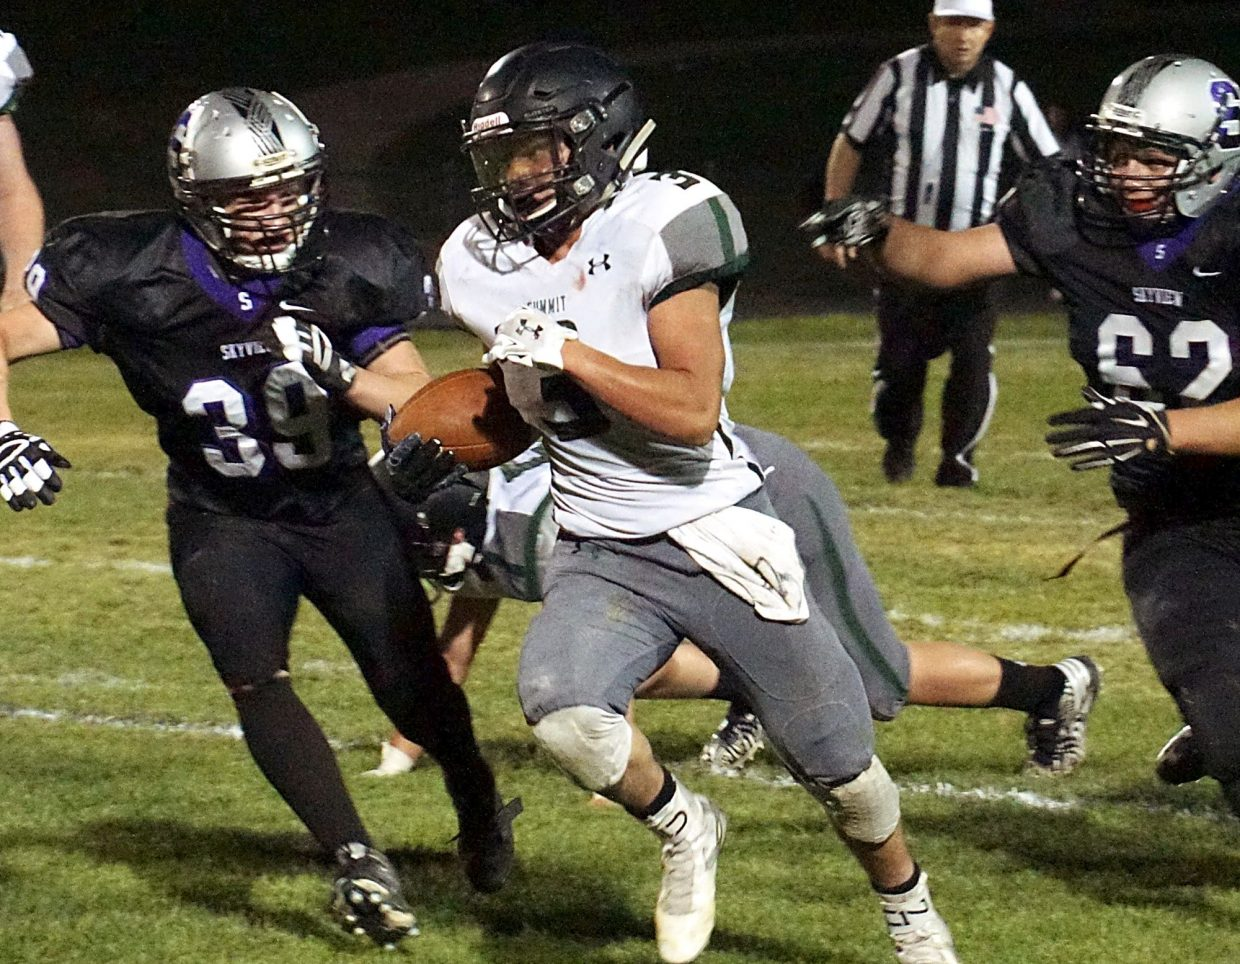 Tigers senior running back Adolfo Vasquez tears past Skyview defenders at an away football game on Sept. 16. The Tigers lost, 33-14.